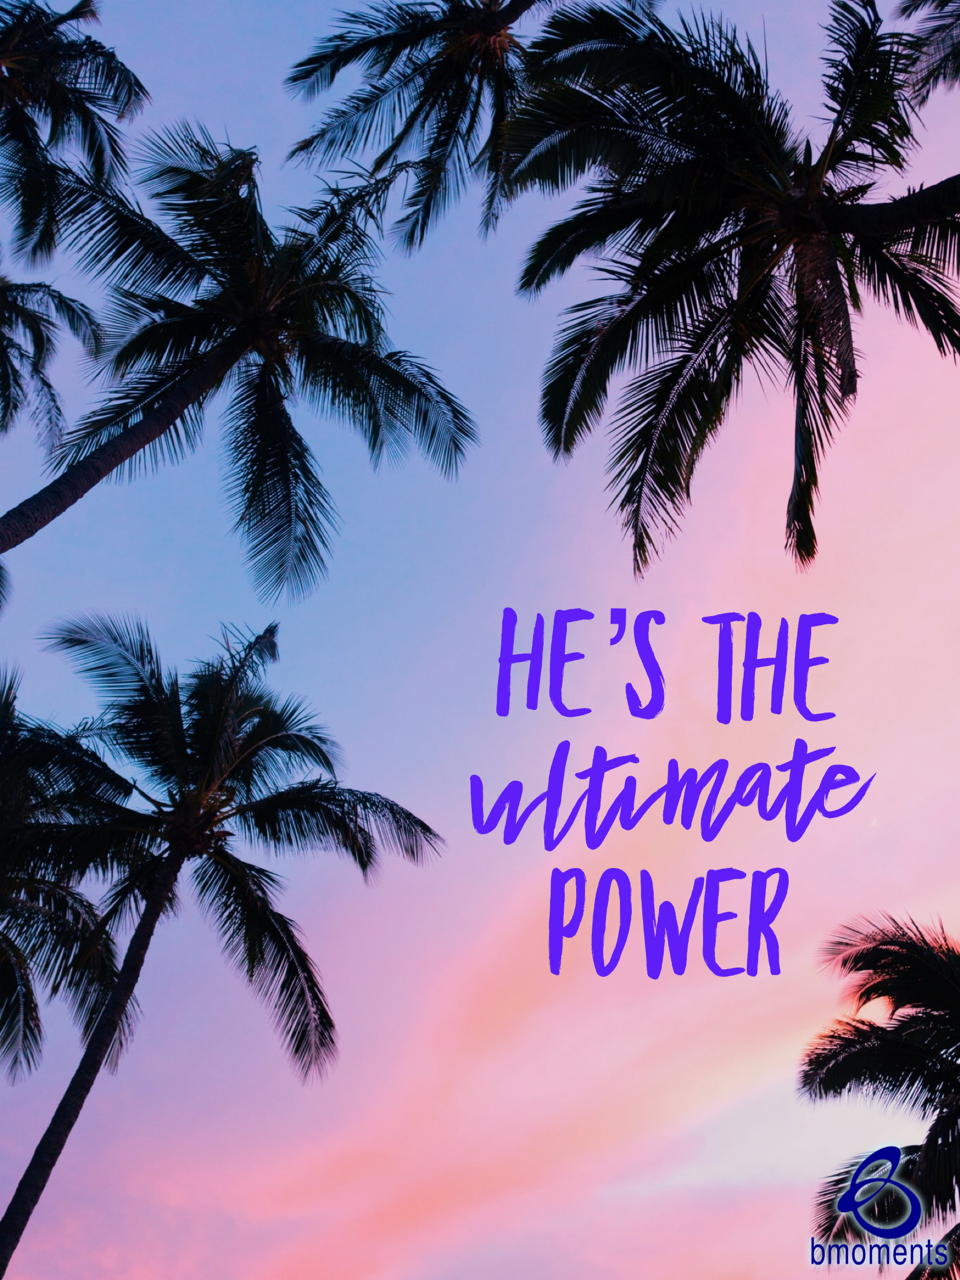 Palm Sunday: Two Perspectives on Power